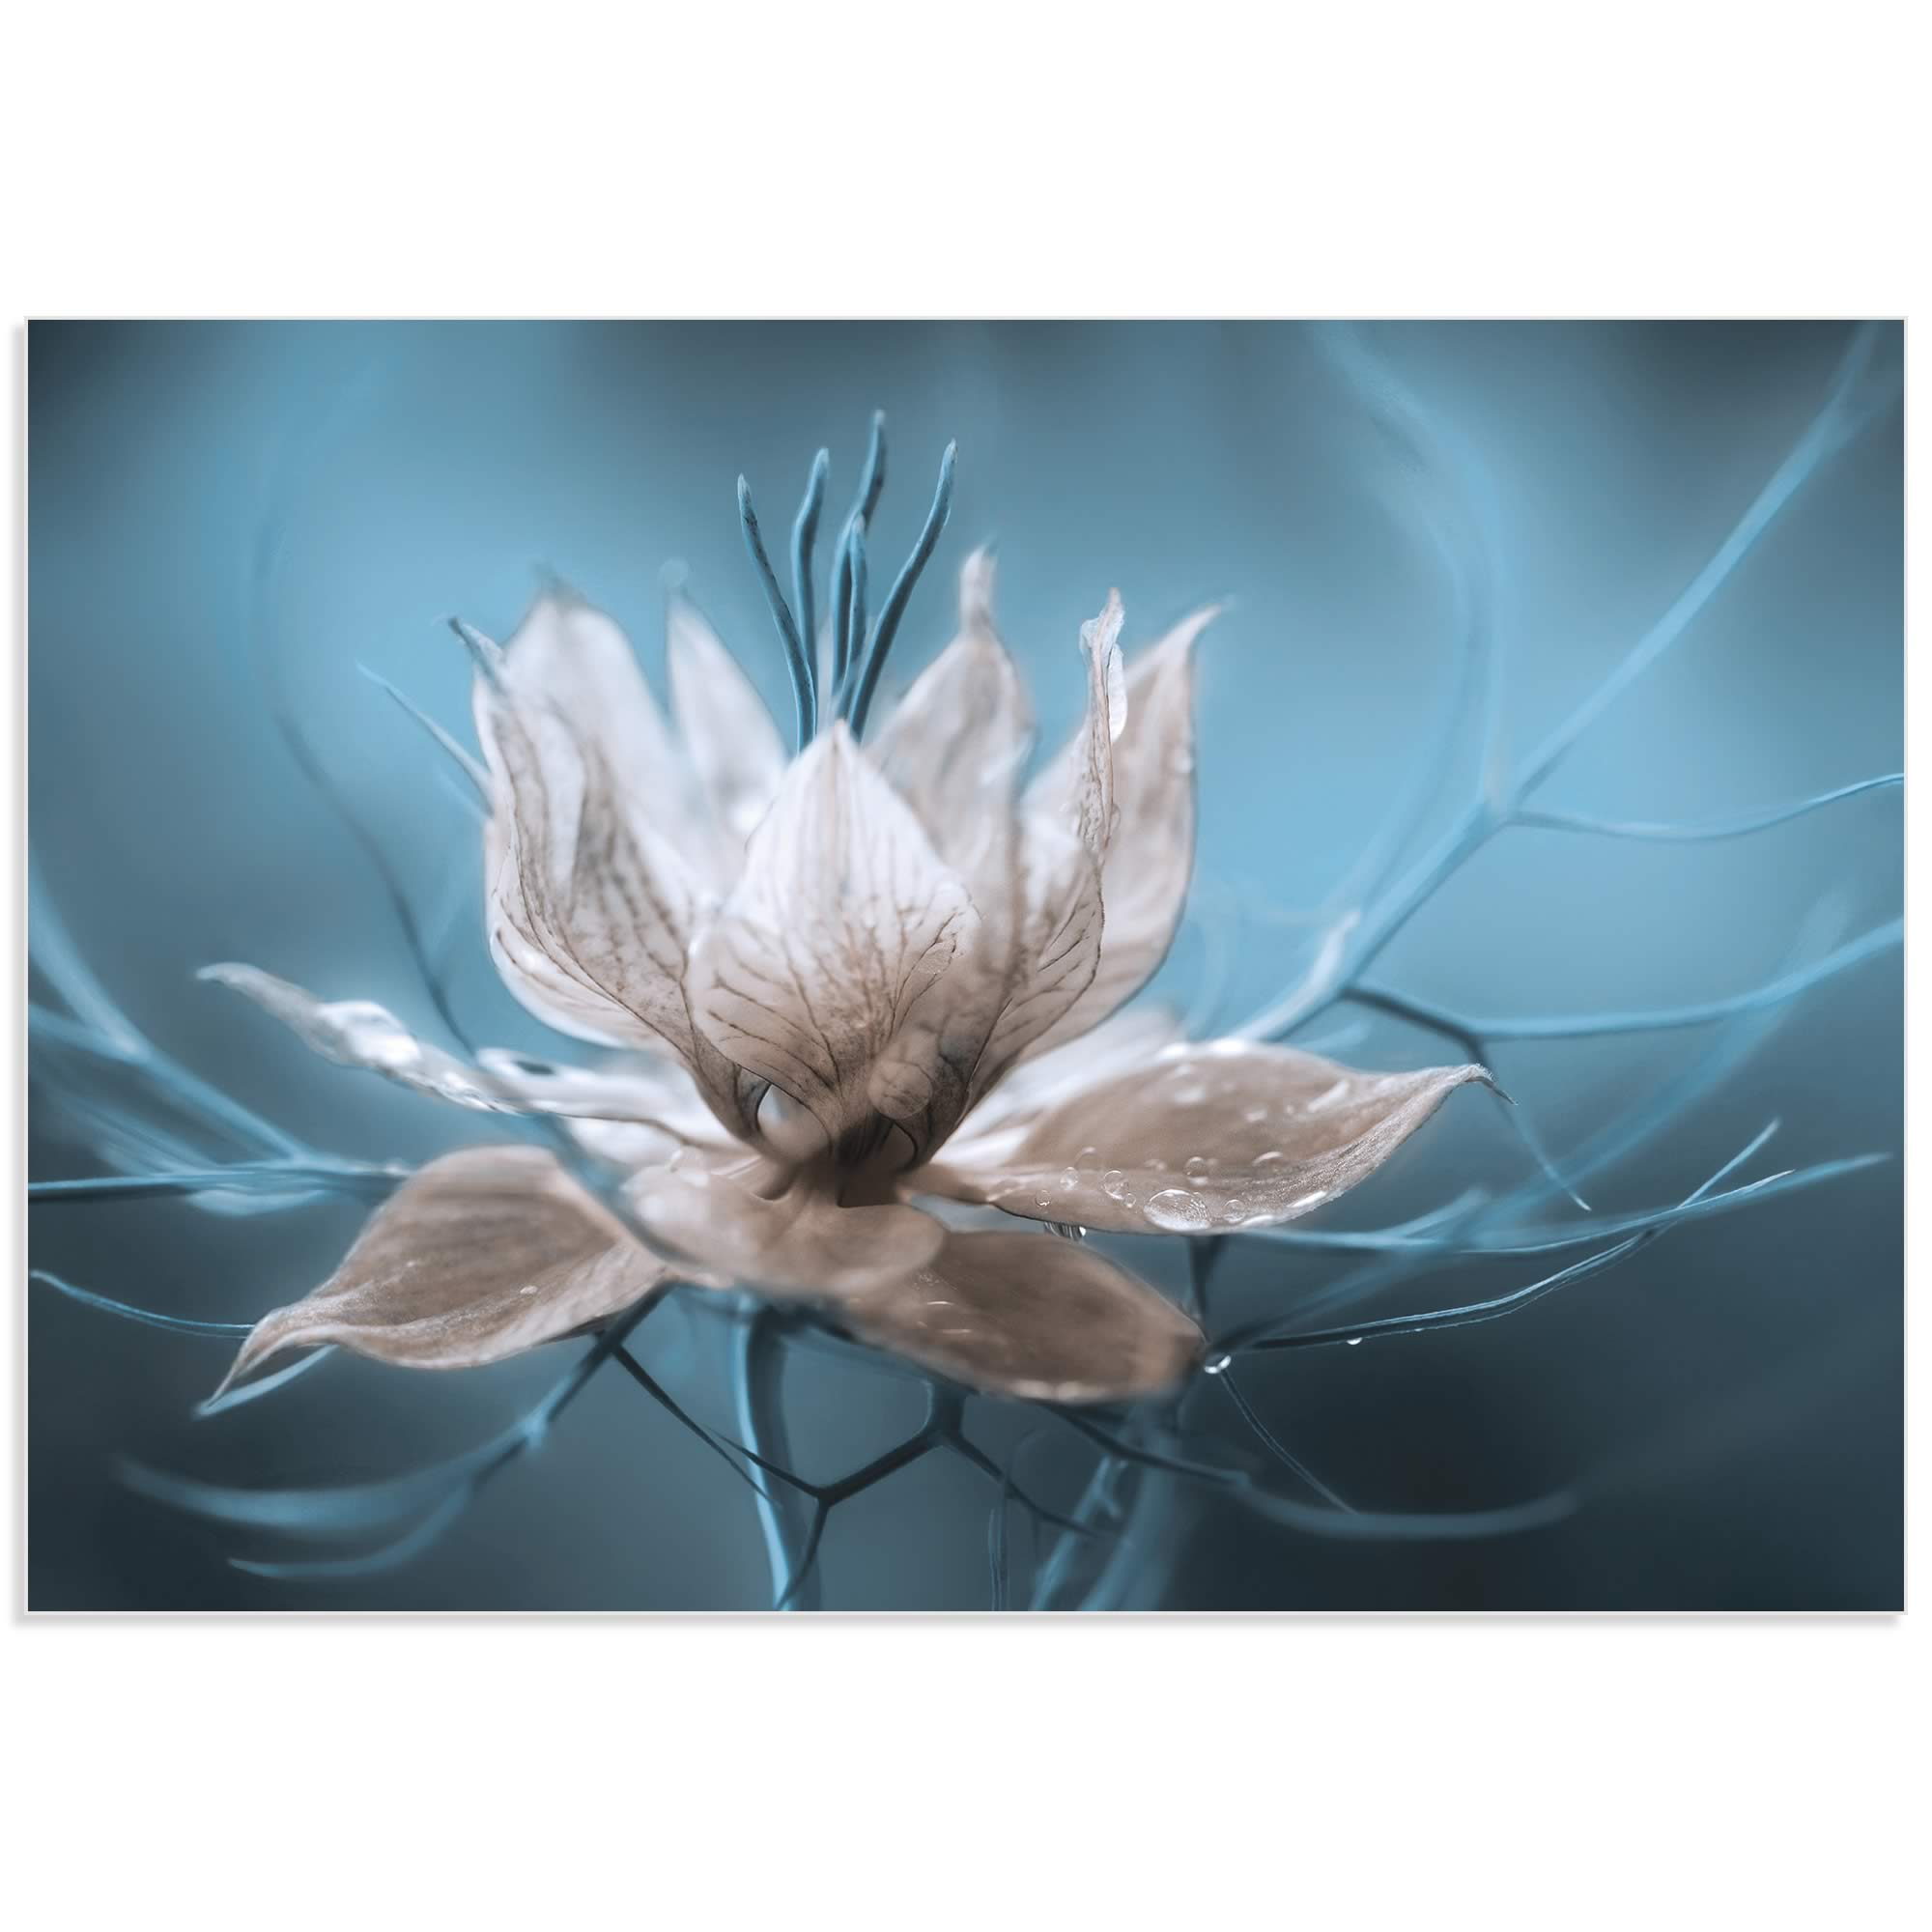 Ice Flower by Mandy Disher - Frozen Flower Image on Metal or Acrylic - Alternate View 2